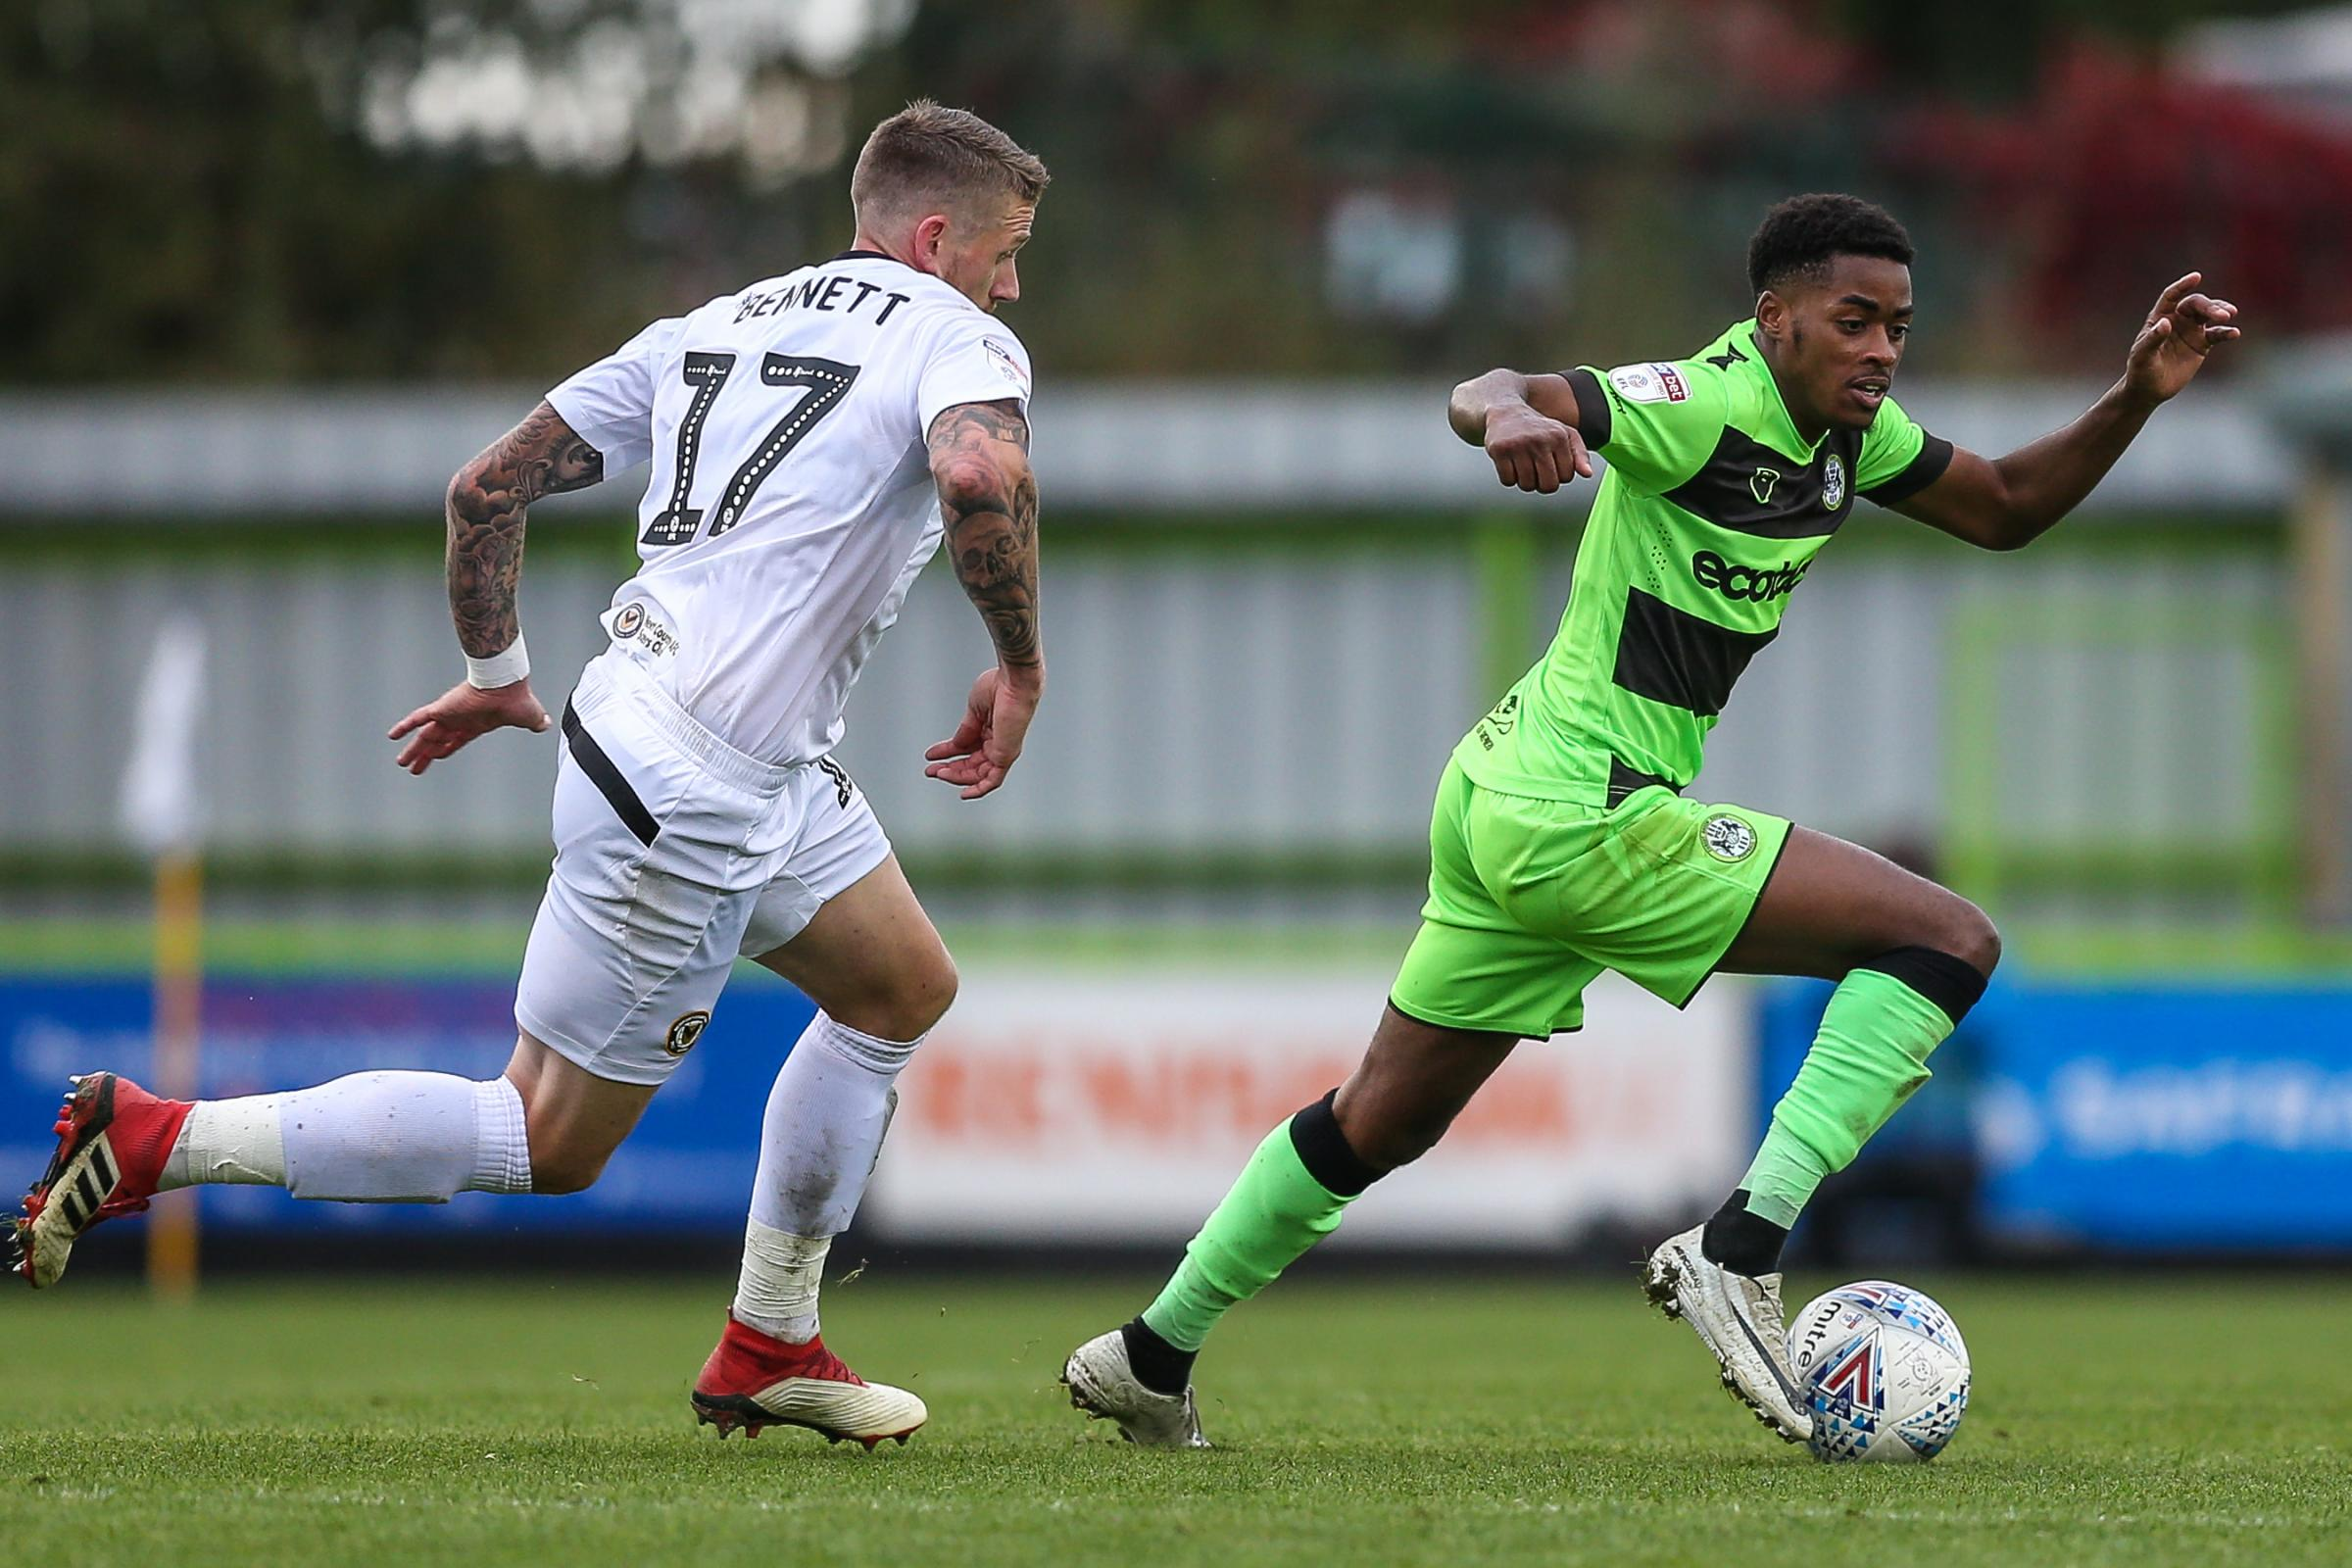 Forest Green Rovers Reece Brown(10) on the ball during the EFL Sky Bet League 2 match between Forest Green Rovers and Newport County at the New Lawn, Forest Green, United Kingdom on 6 October 2018.